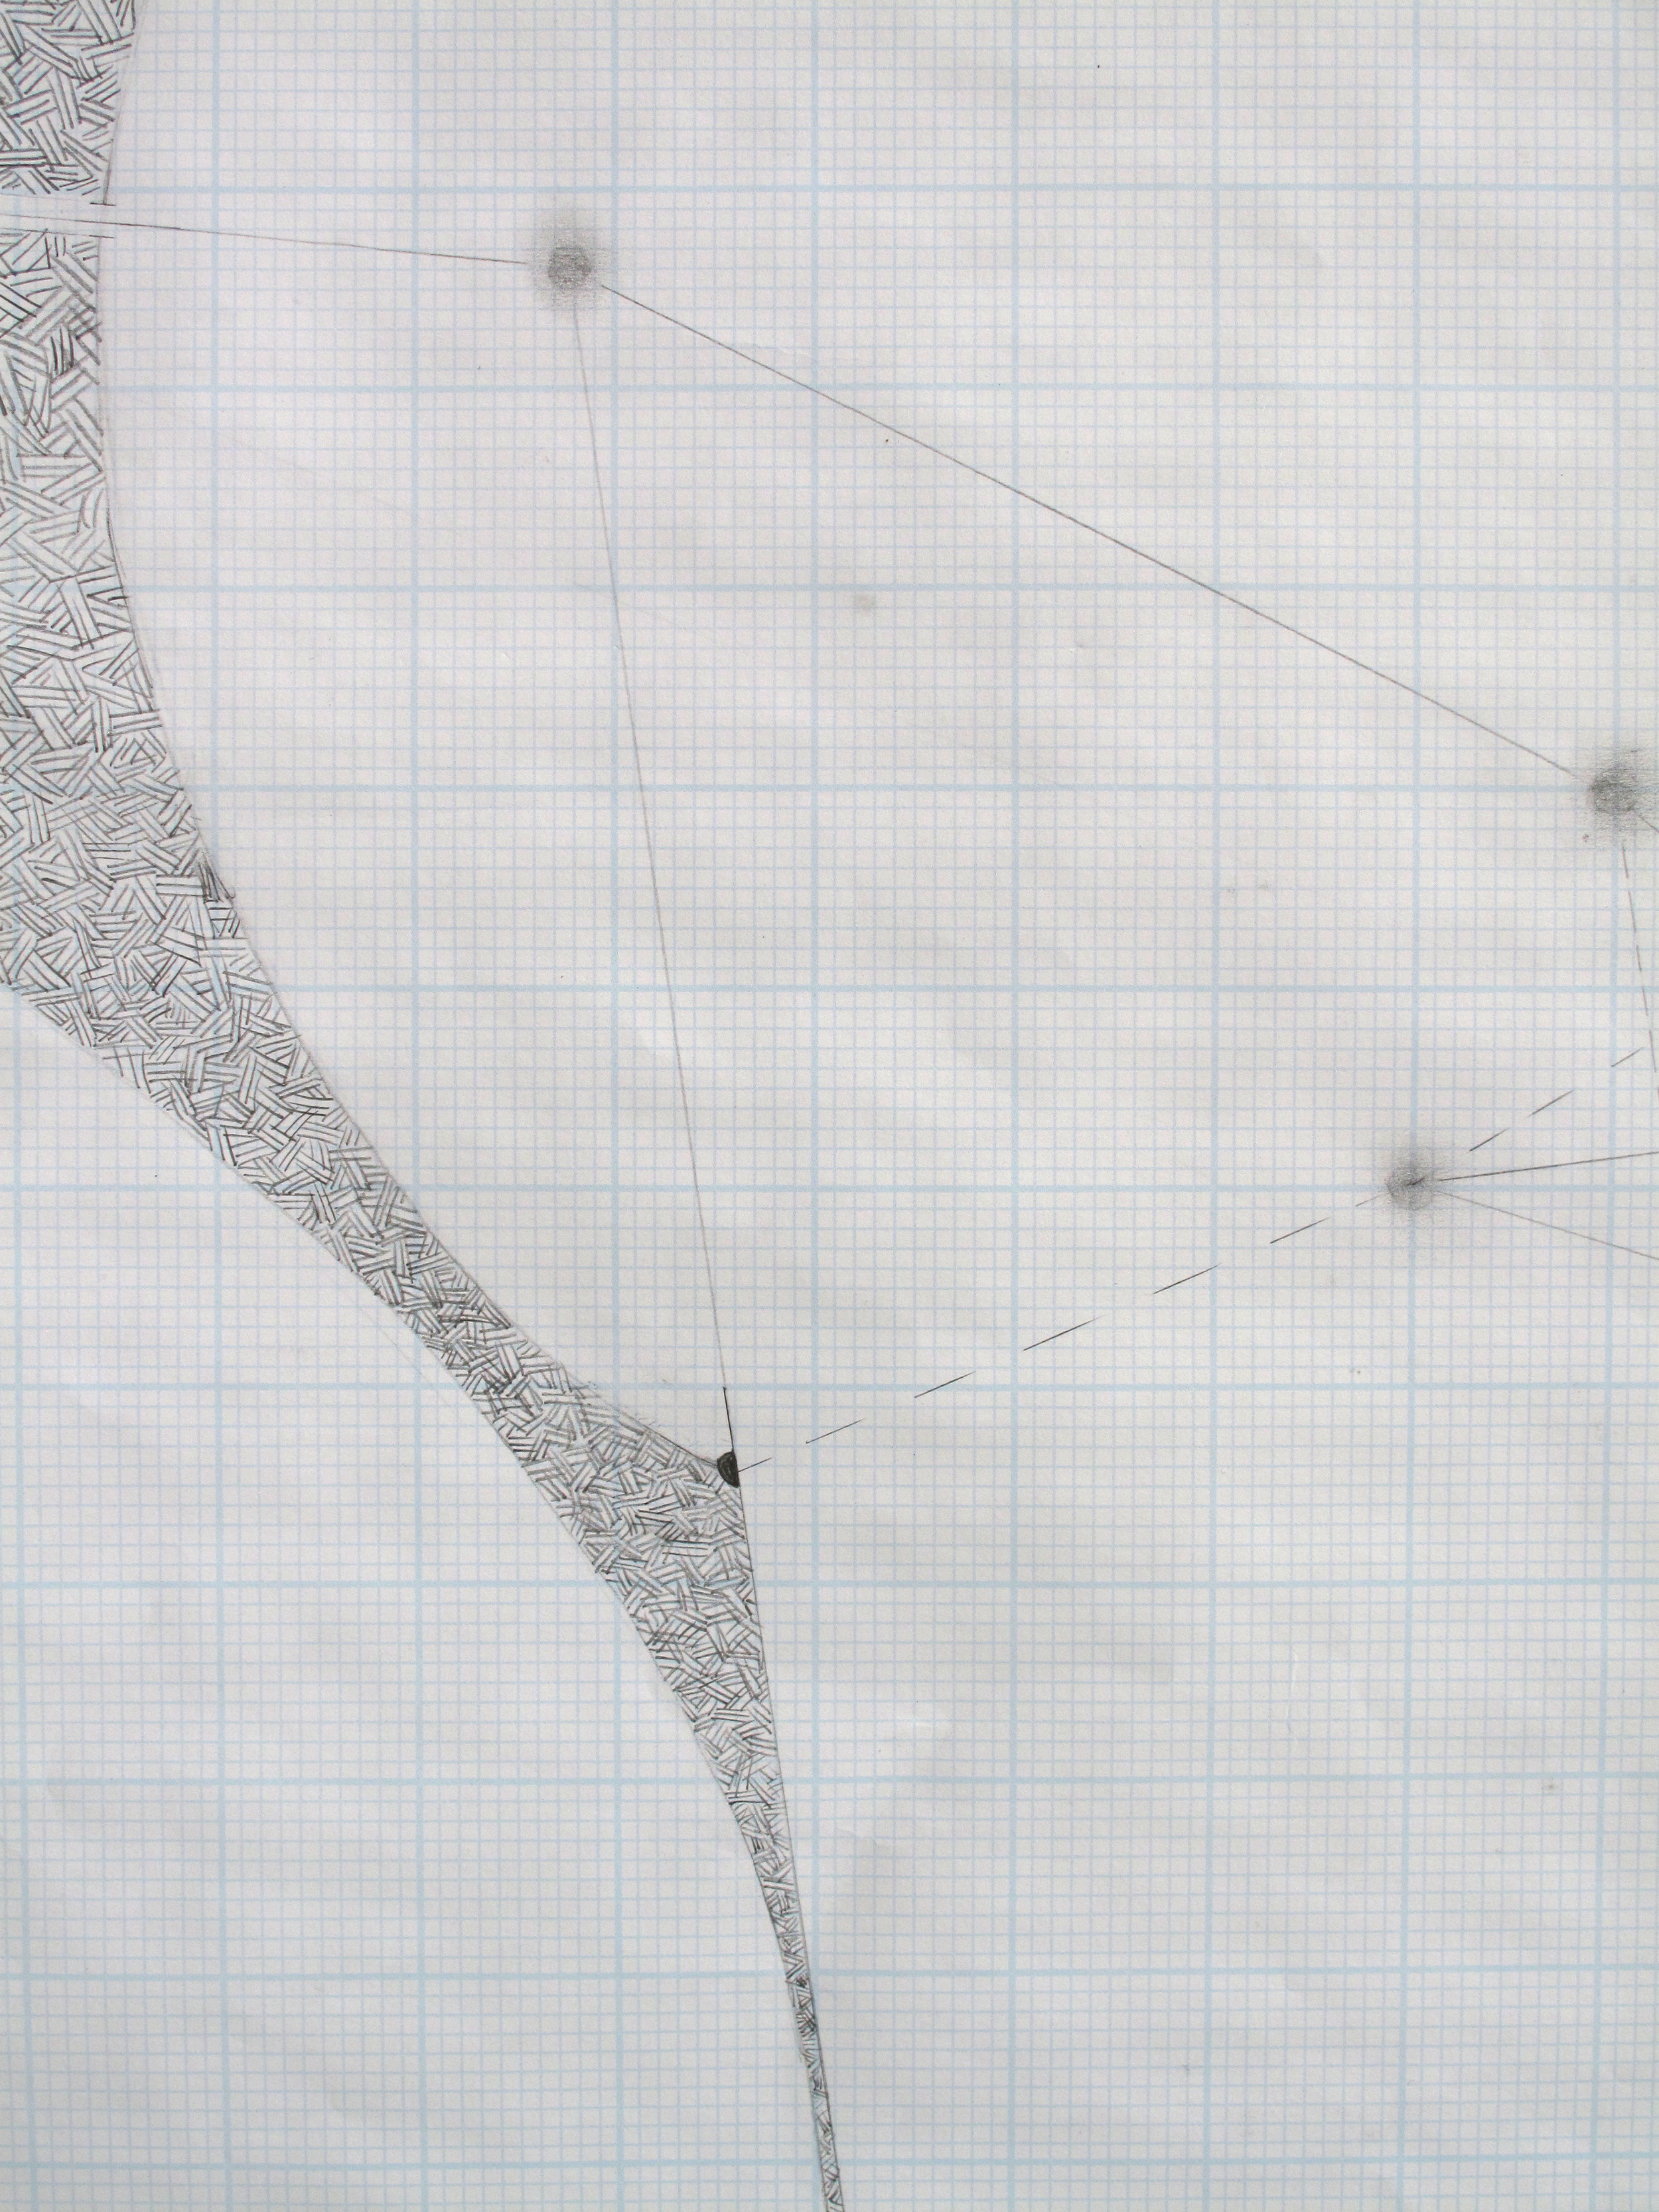 """Studies in Space, Detail    Graphite on Graph Paper; 17"""" x 22"""" (from series of 4)"""